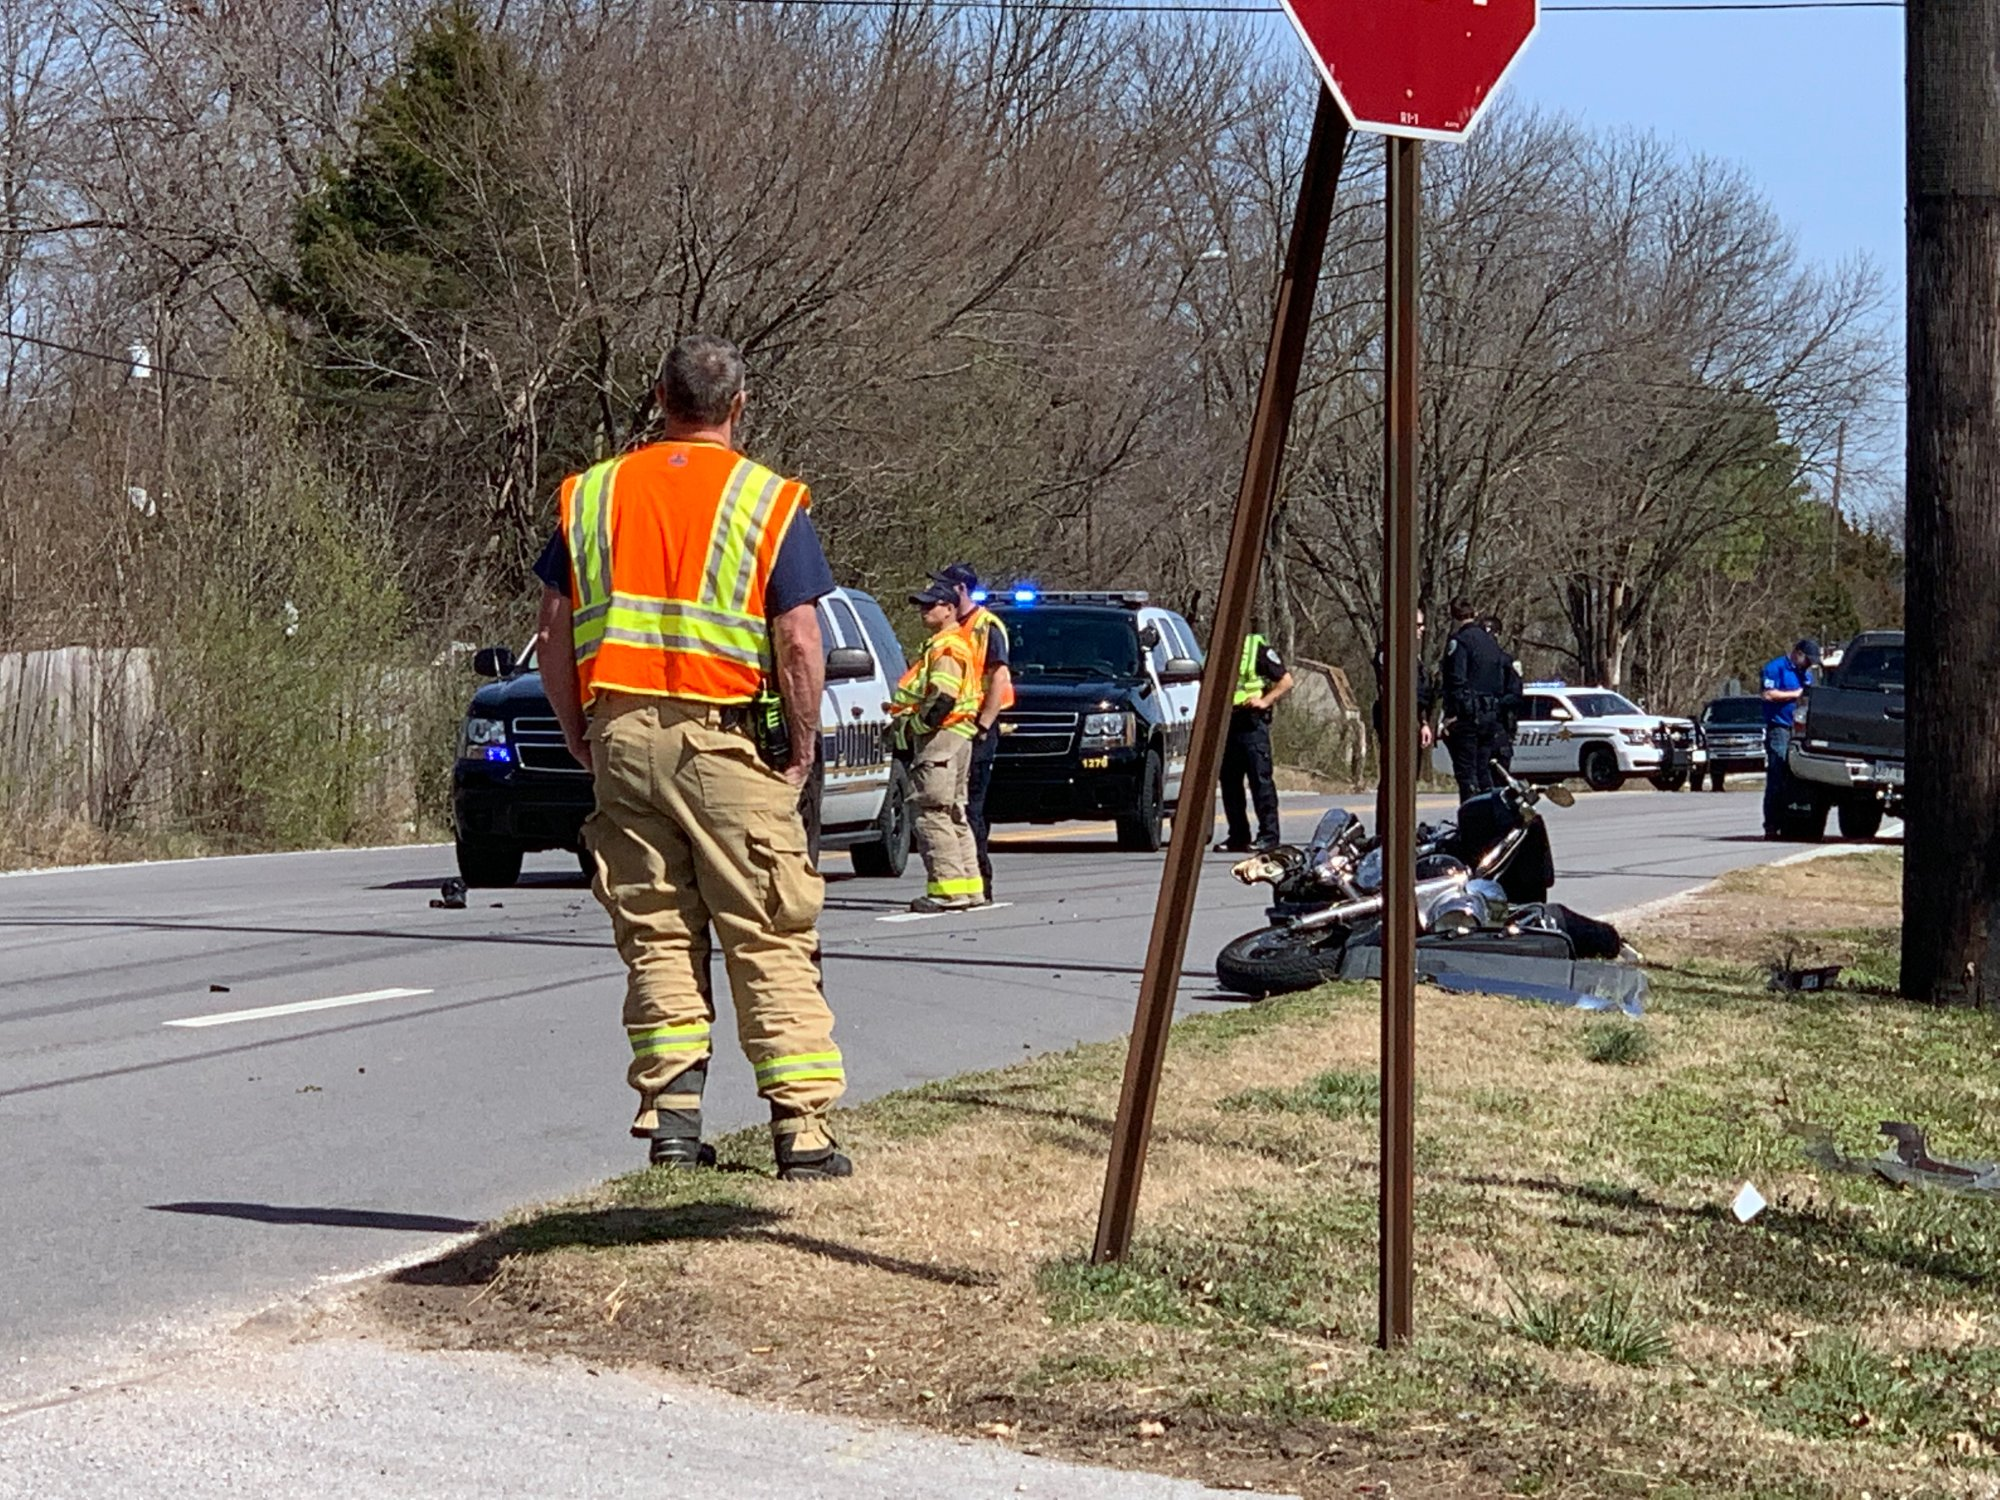 Emergency Crews Respond To Motorcycle Crash In Fayetteville | Fort